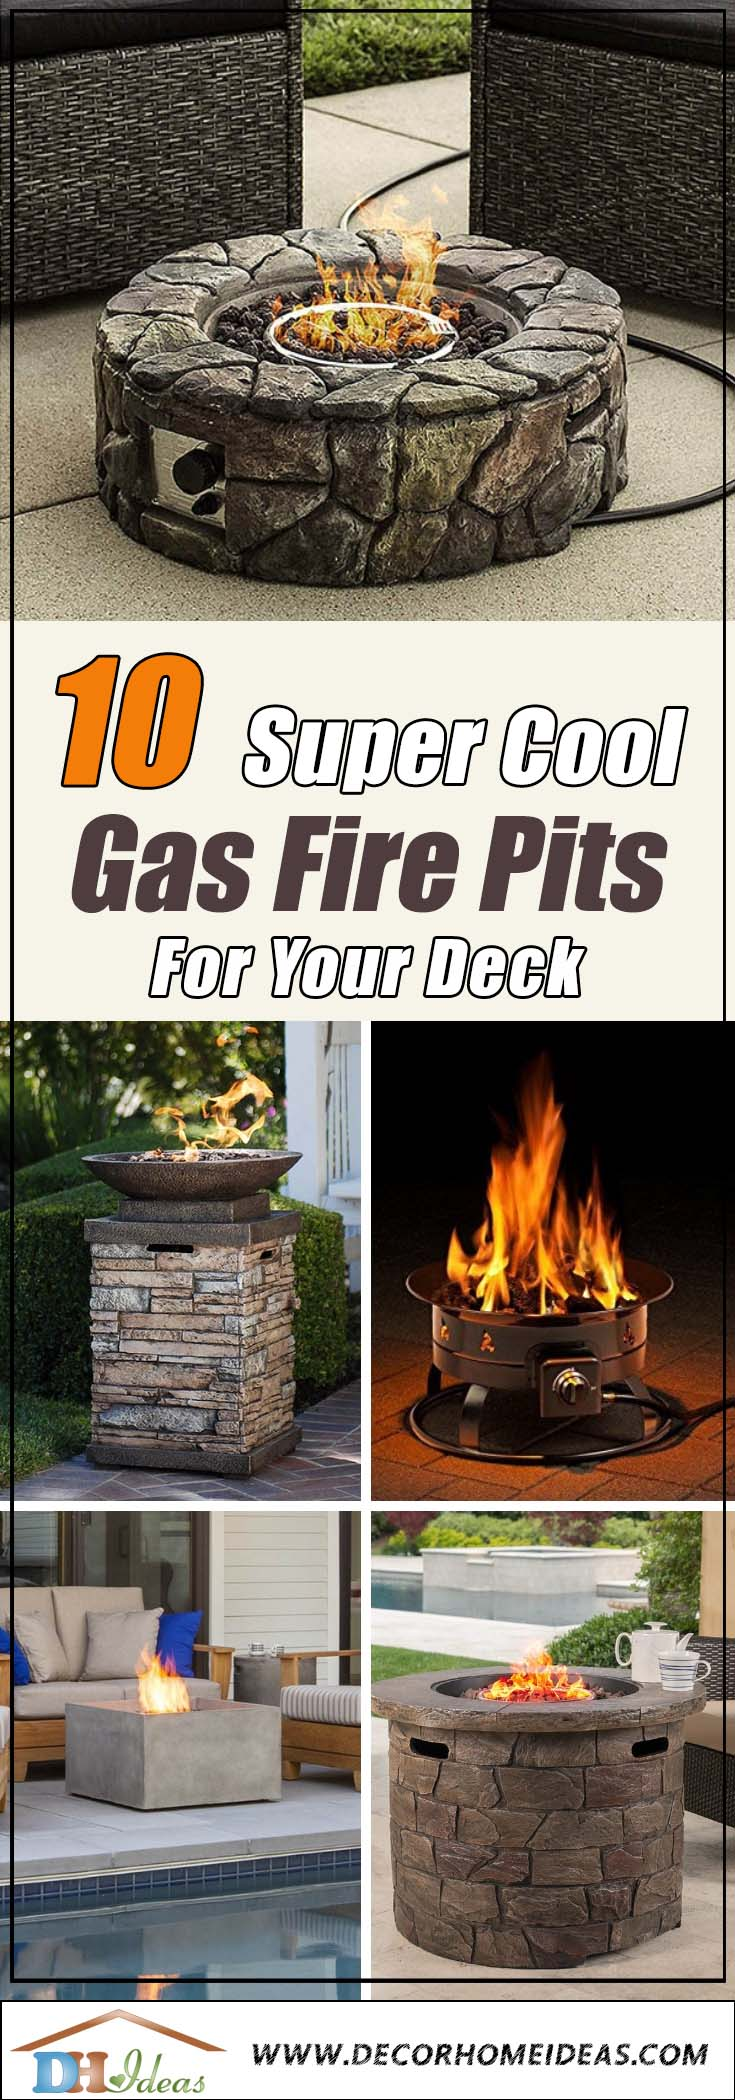 10 Best Gas Fire Pits For Deck Firepit Gasfirepit Propanefirepit Firepitdesign